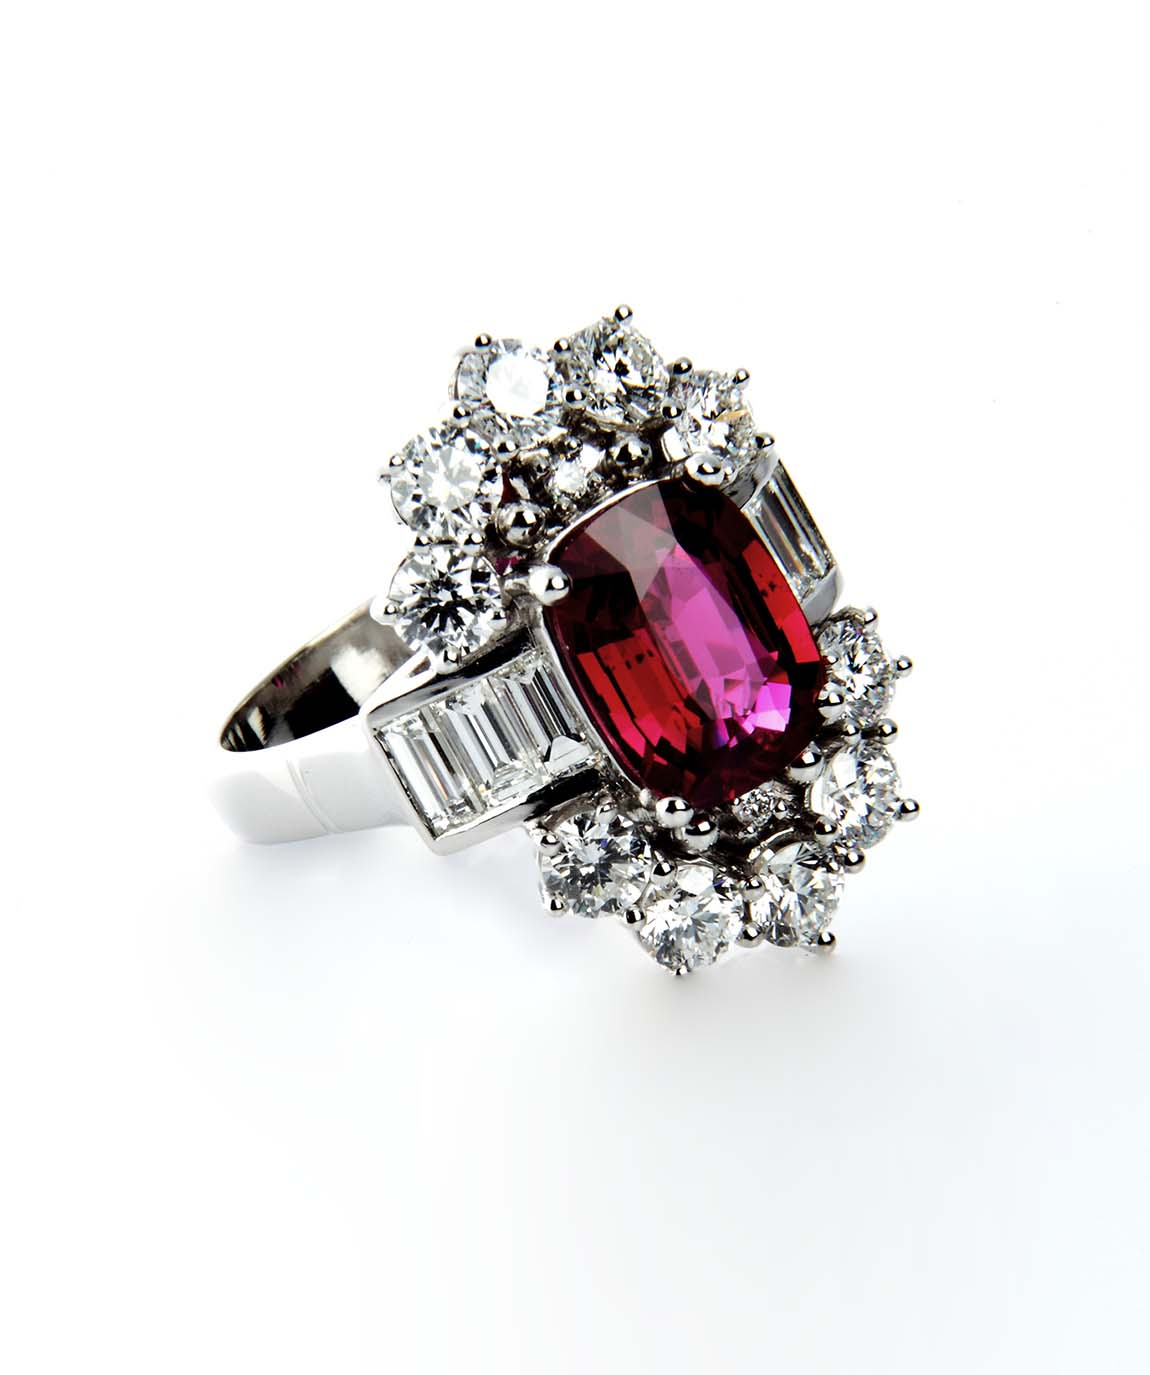 Occasion ring category link